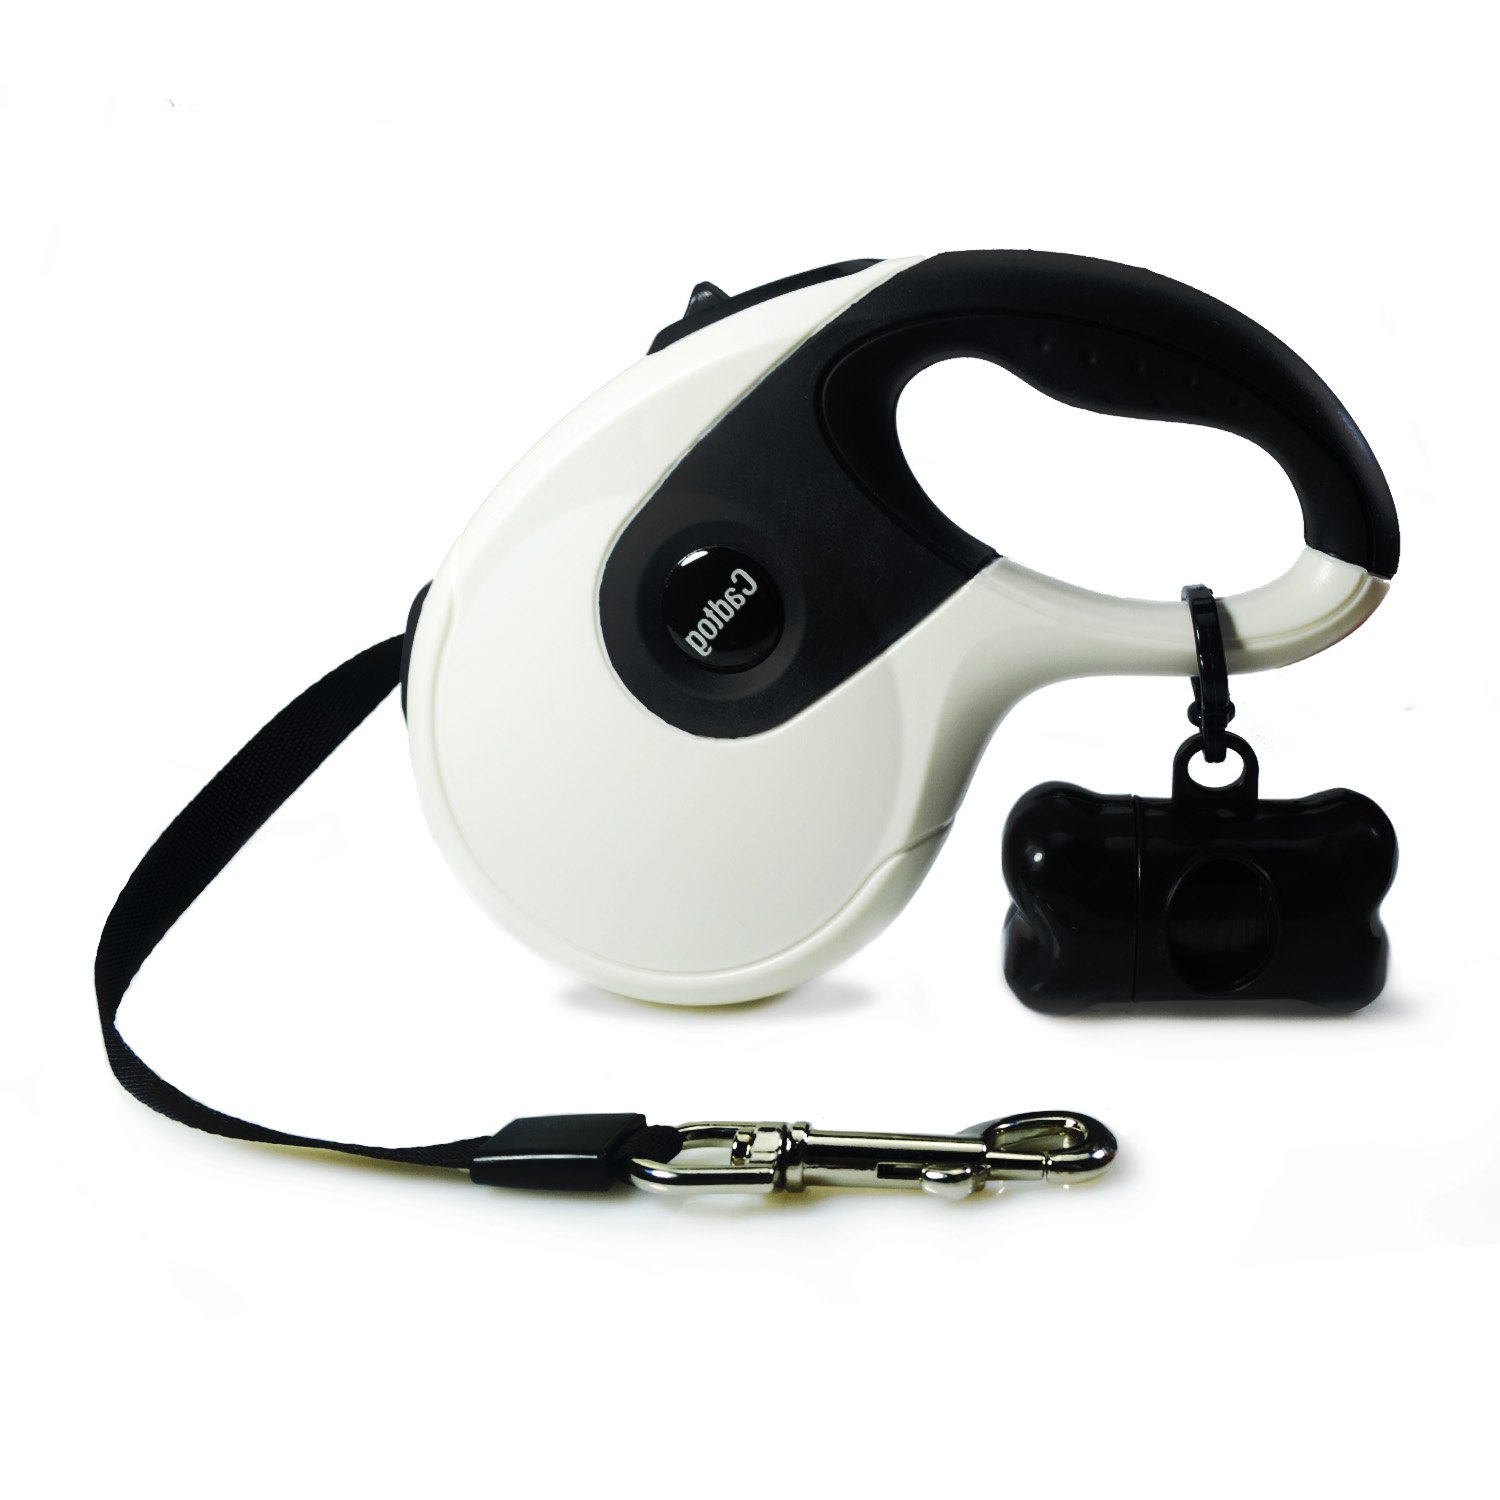 Cadtog Retractable Dog Leash,16 ft Dog Walking Leash for Medium Large Dogs up to 110lbs,One Button Break & Lock, Dog Waste Dispenser and Bags Included (White)